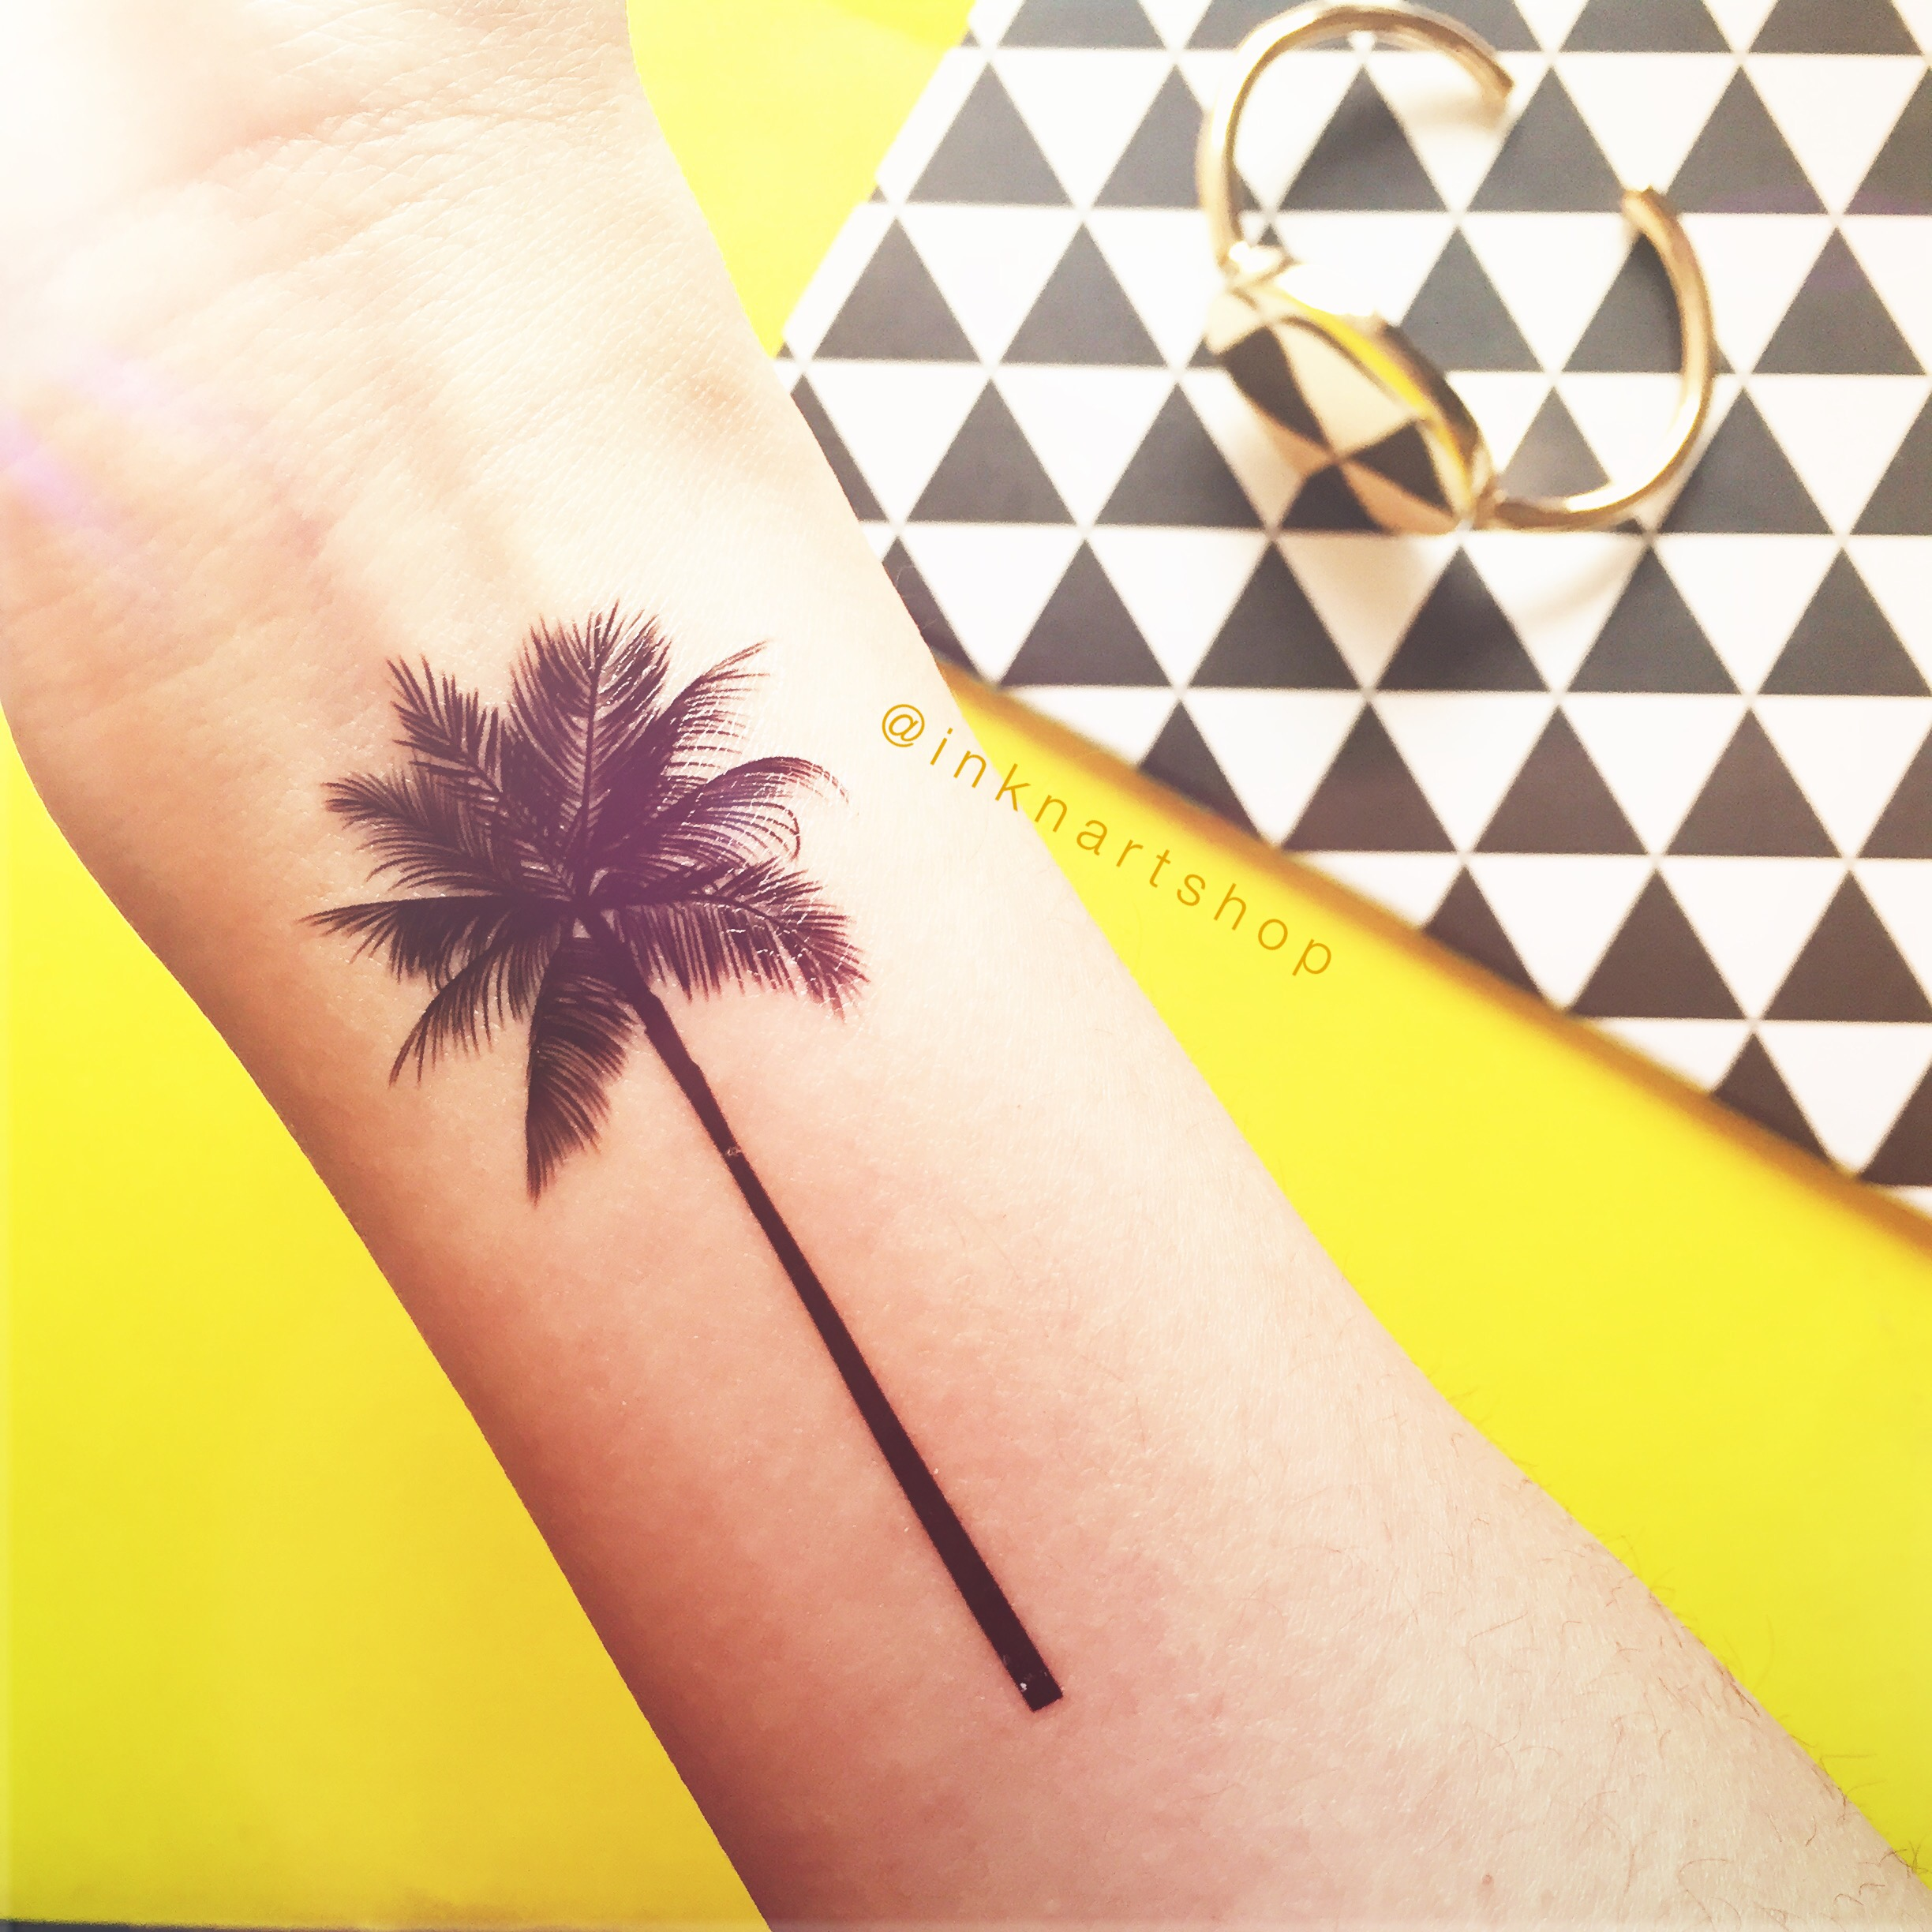 2pcs palm tree tattoo 2 sizes inknart temporary tattoo beach summer vacatoin floral travel arm. Black Bedroom Furniture Sets. Home Design Ideas